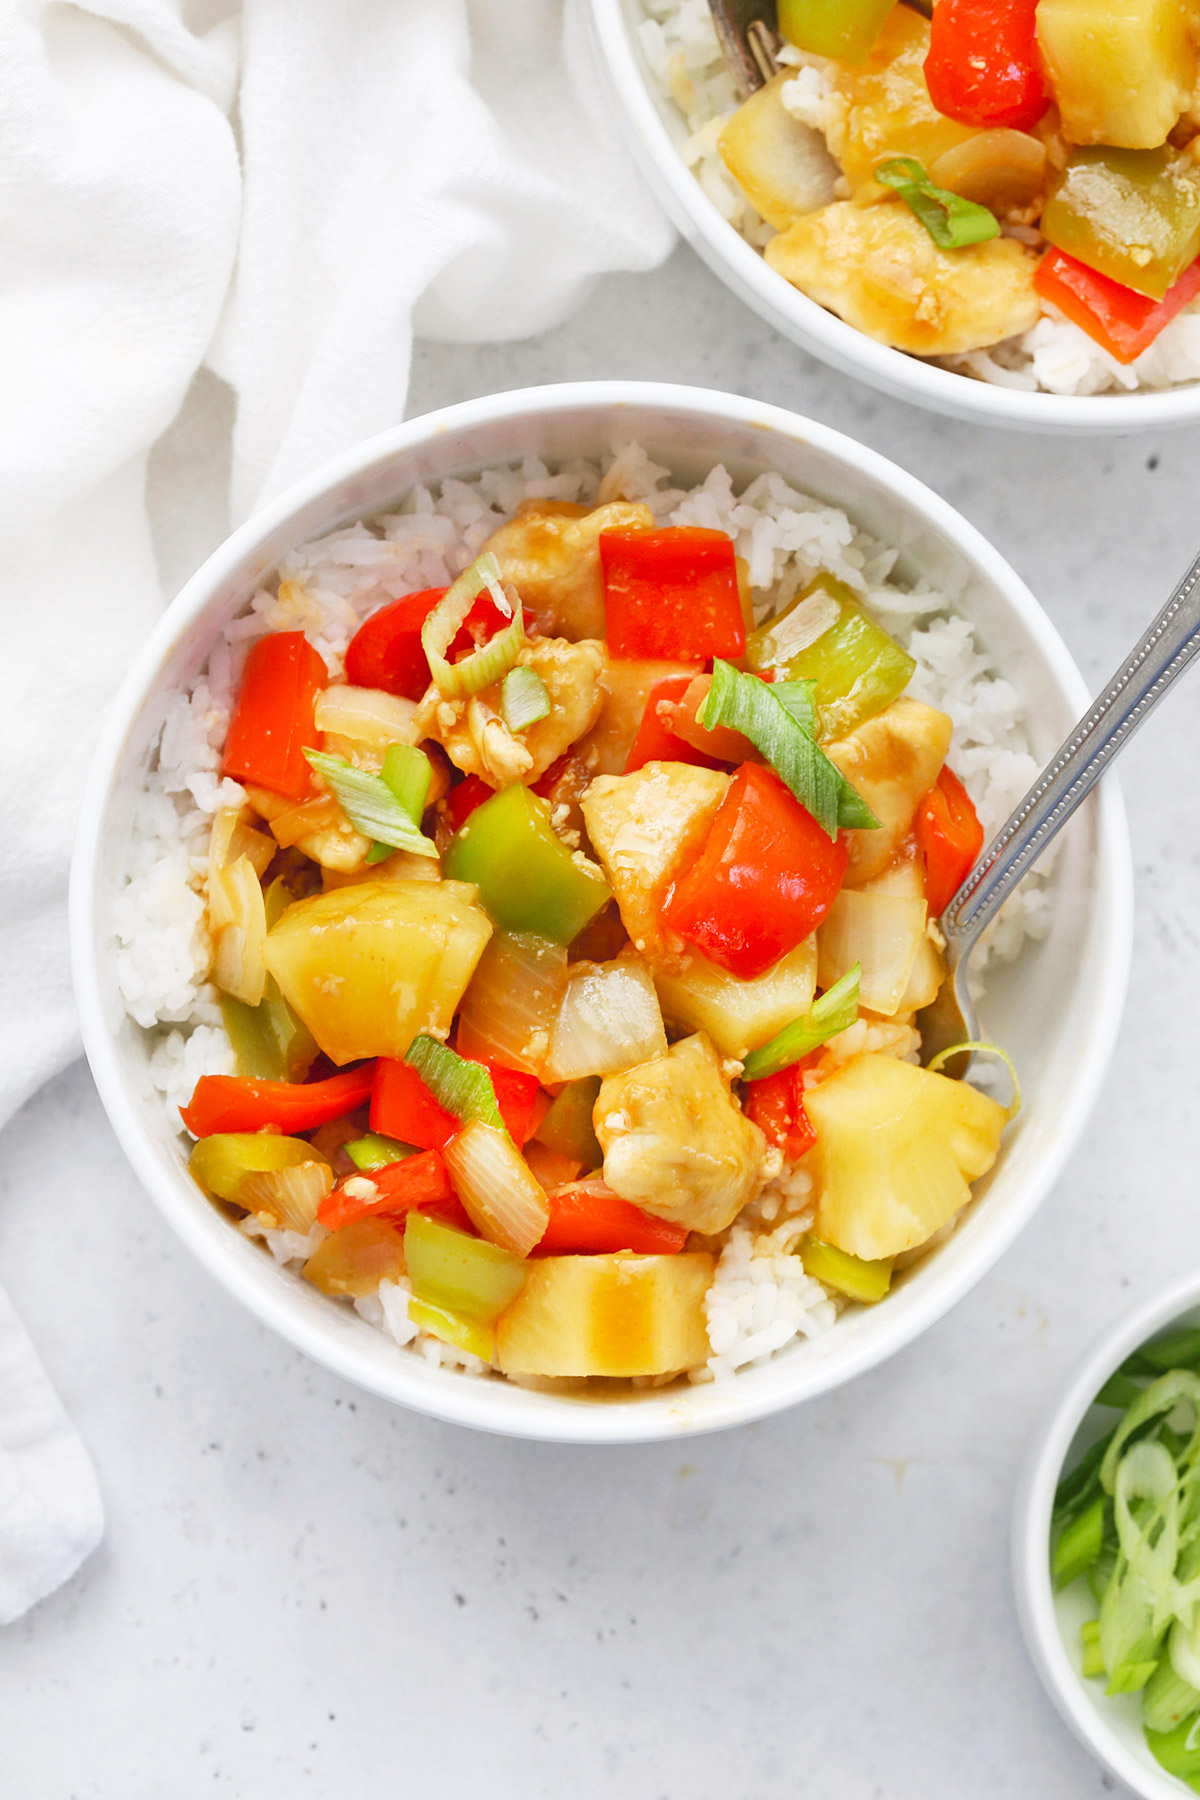 Paleo-Friendly Healthy Sweet and Sour Chicken in a white bowl on a white background